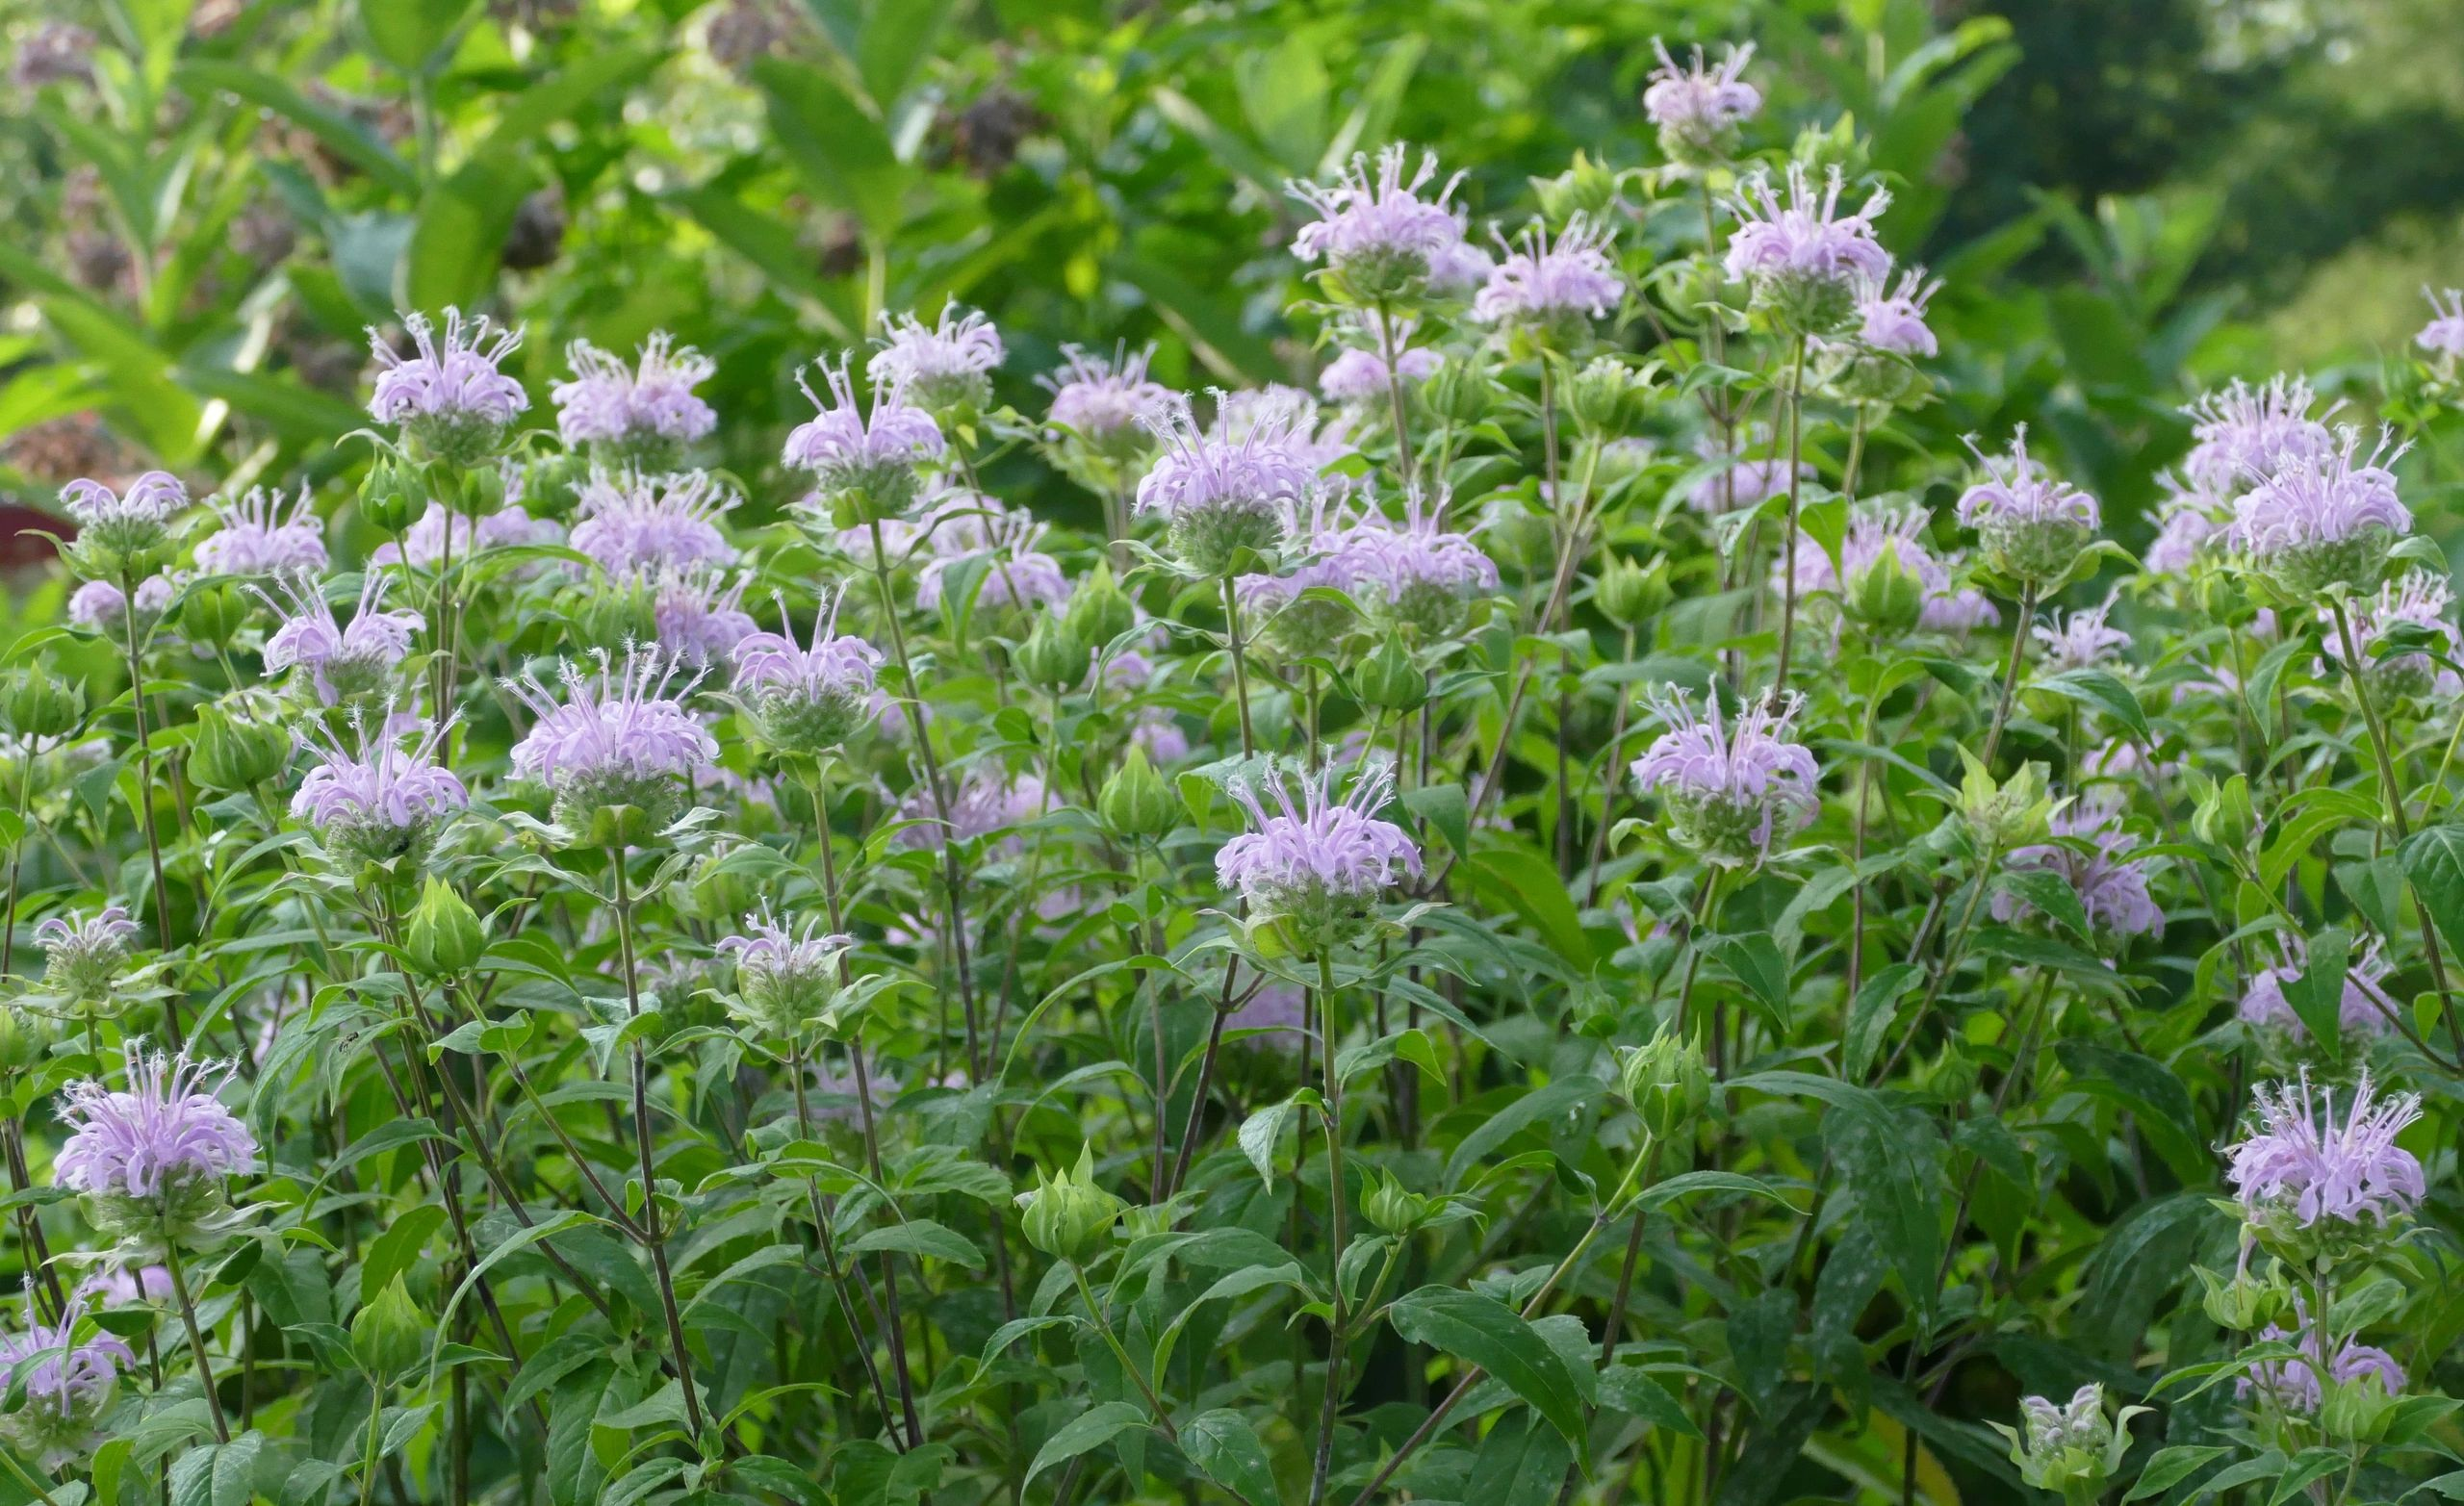 "{""blocks"":[{""key"":""3ssqo"",""text"":""Monarda fistulosa Wild Bergamot Beebalm - potted plants email john@easywildflowers.com"",""type"":""unstyled"",""depth"":0,""inlineStyleRanges"":[],""entityRanges"":[],""data"":{}}],""entityMap"":{}}"